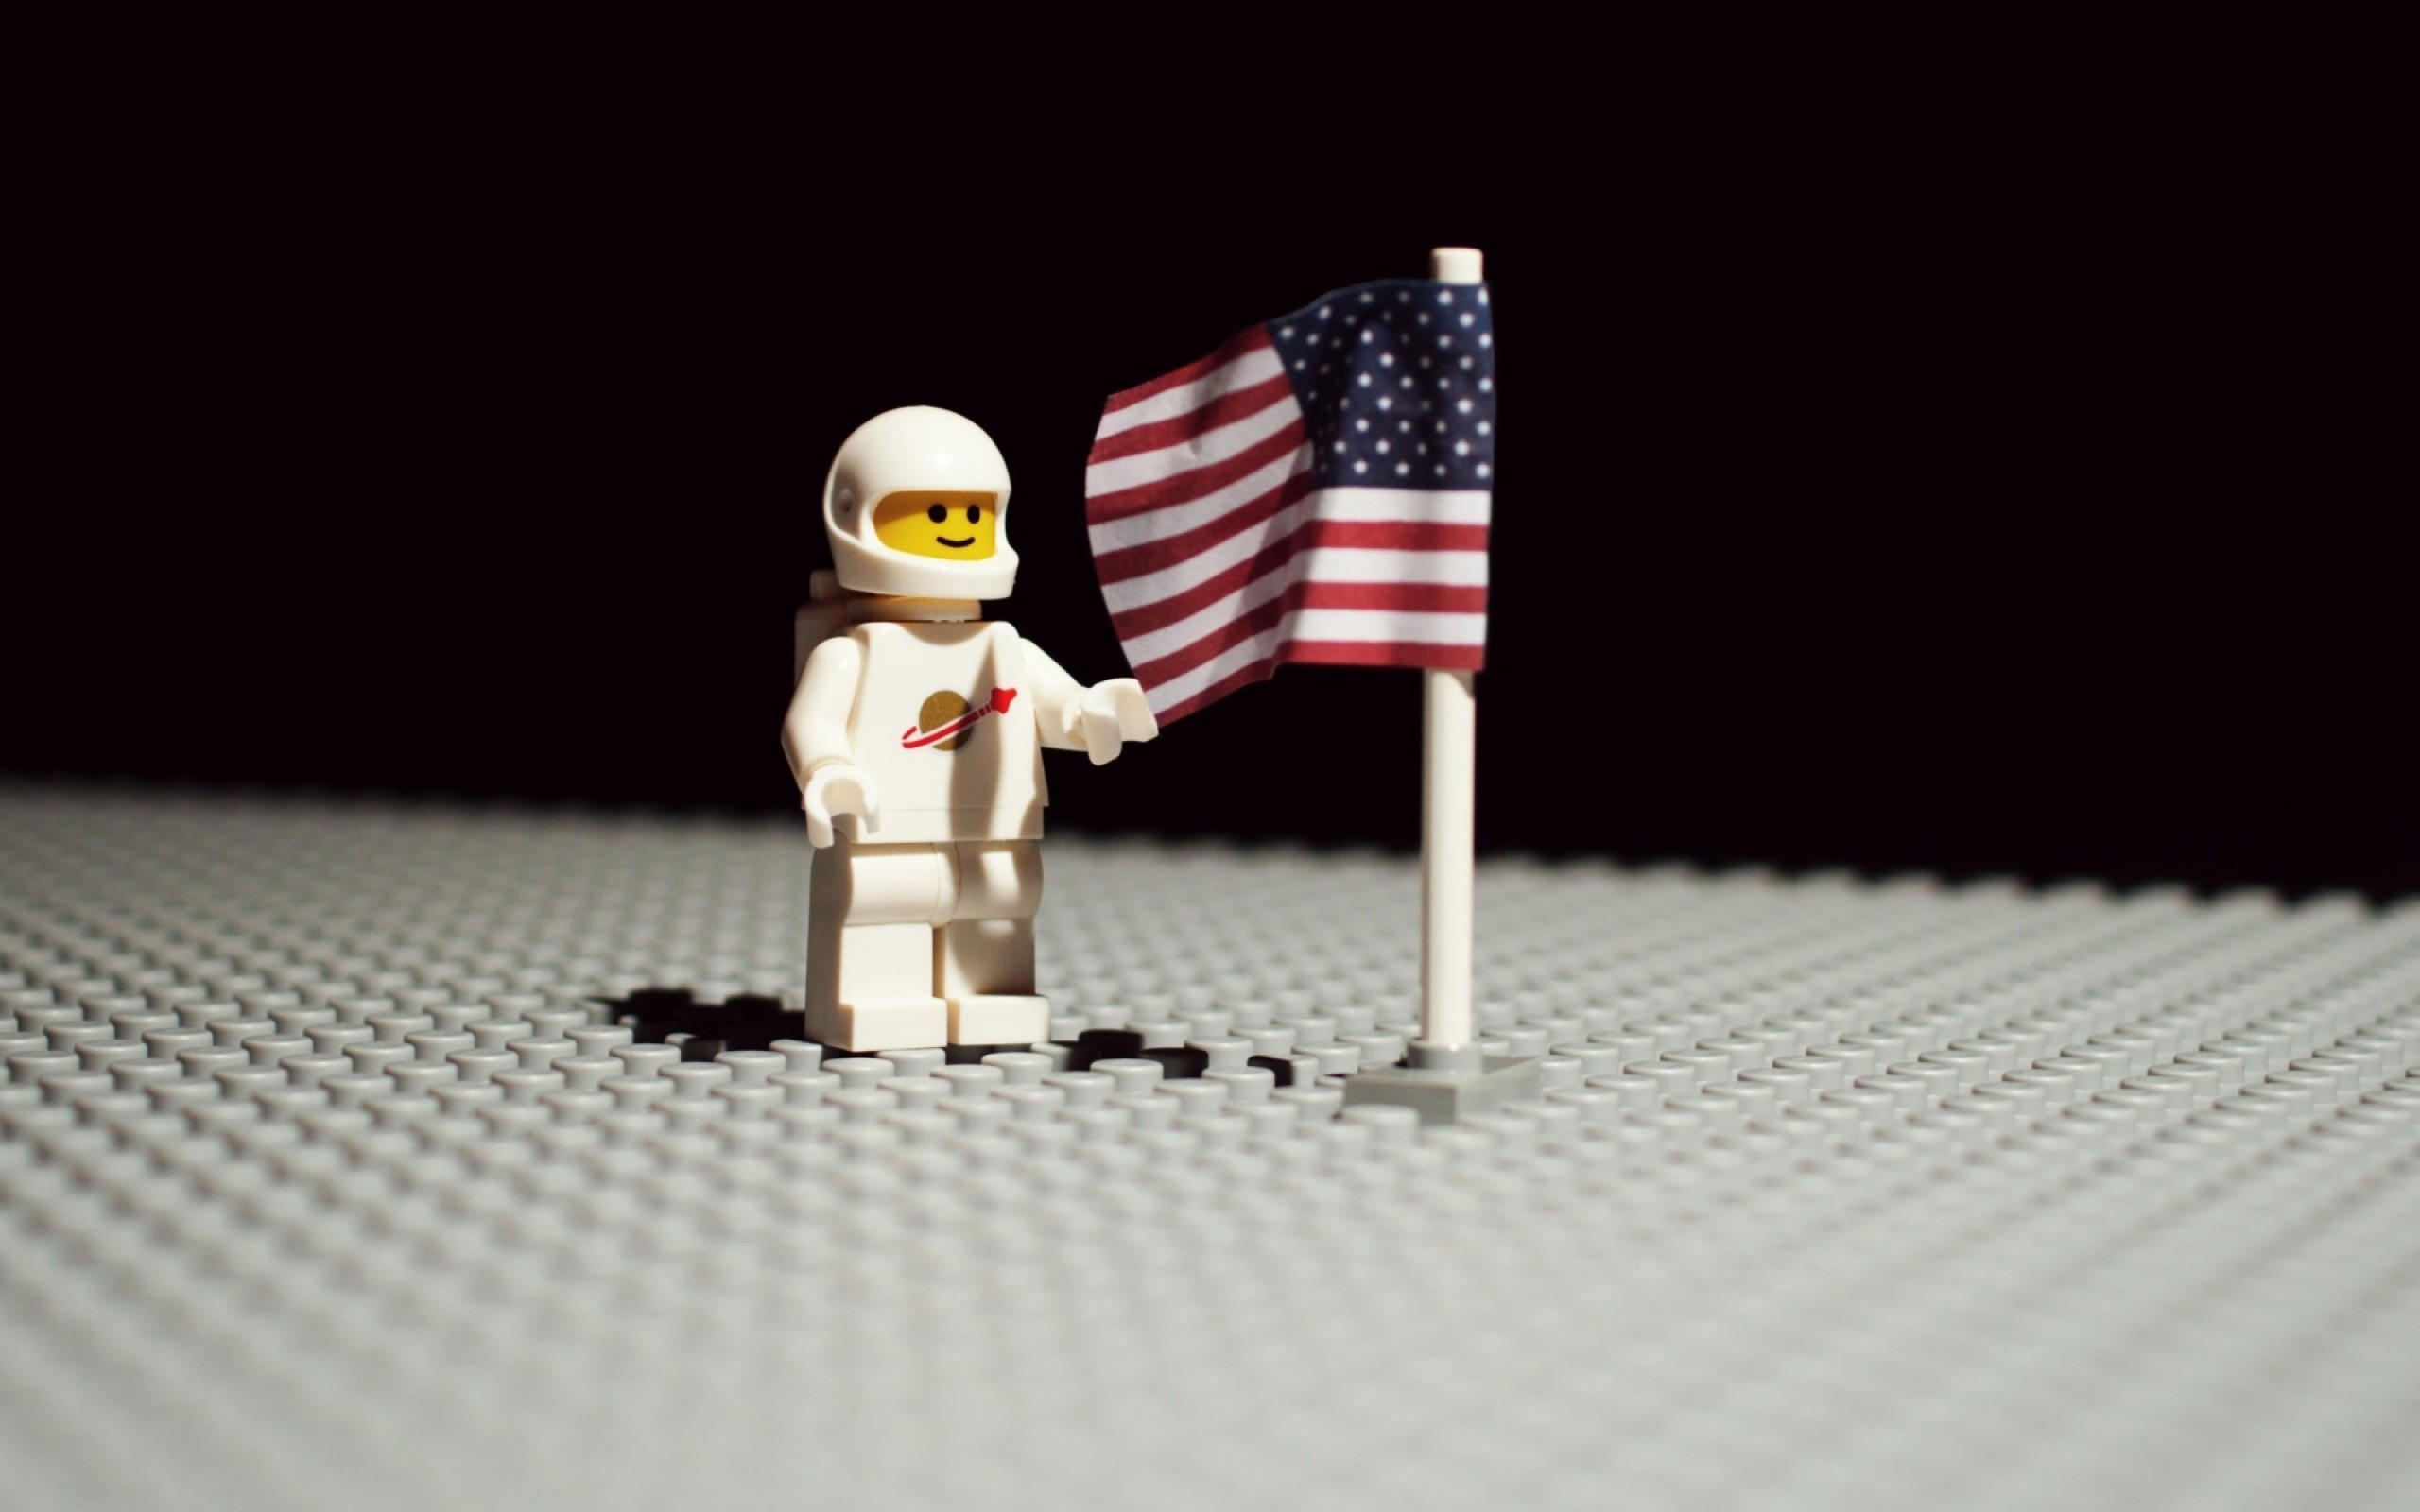 2560x1600 Products - Lego Flag America Astronaut Figurine Toy Wallpaper